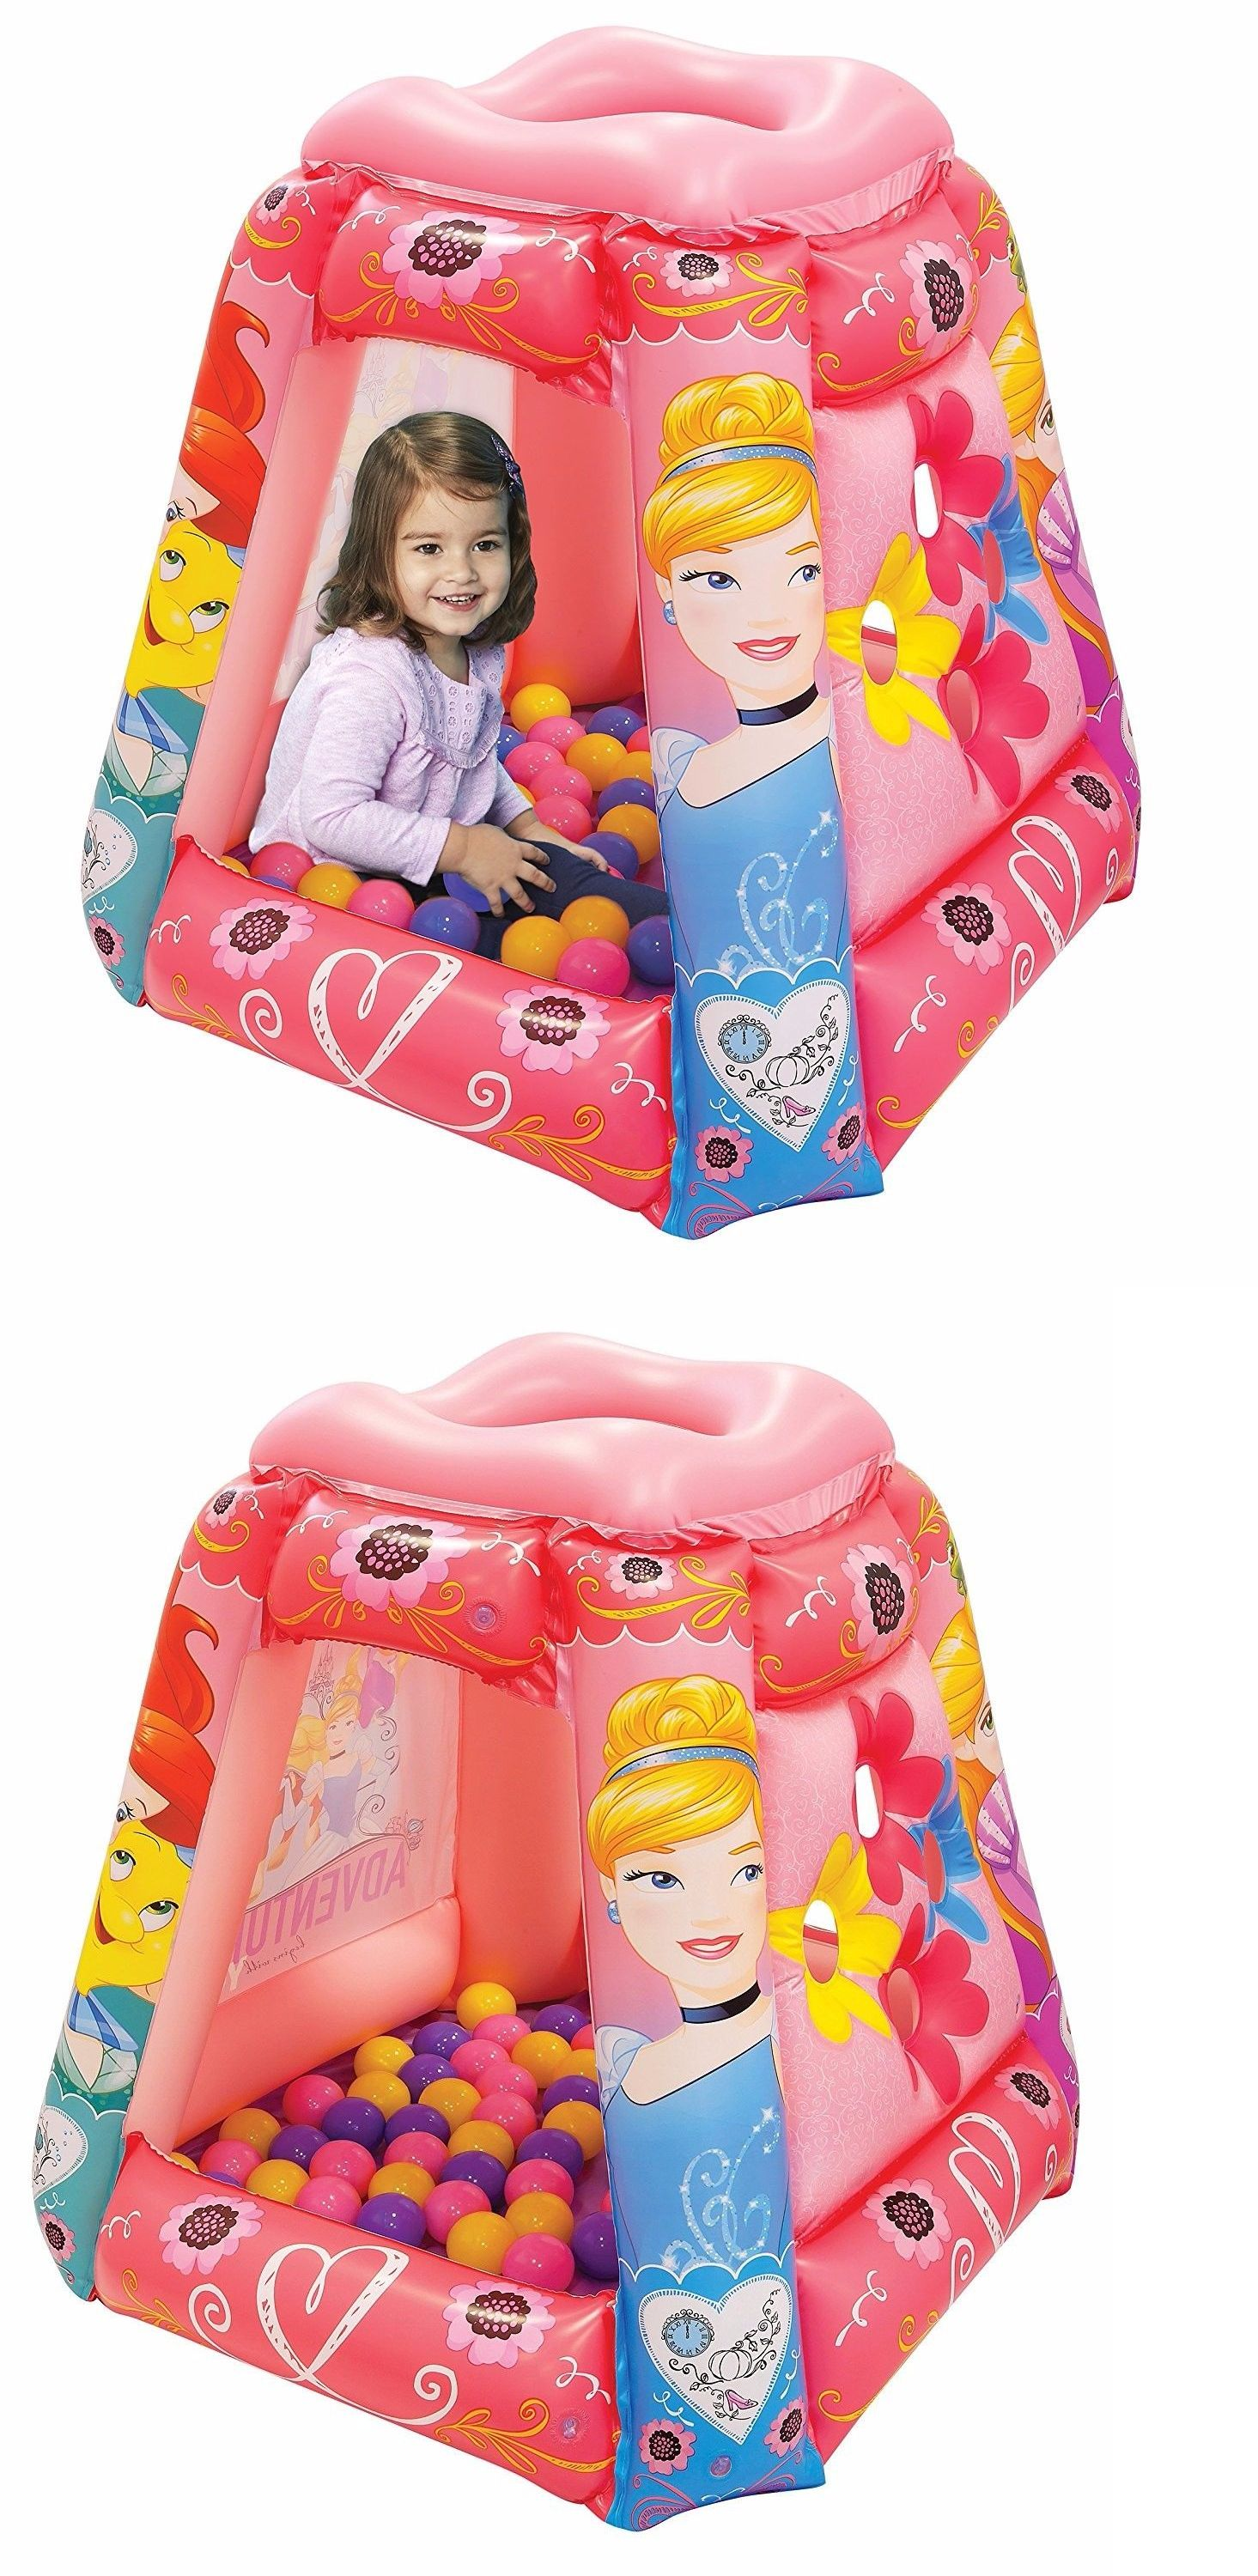 Pit Balls Disney Princess Playland 20 Balls Play Bin Tent